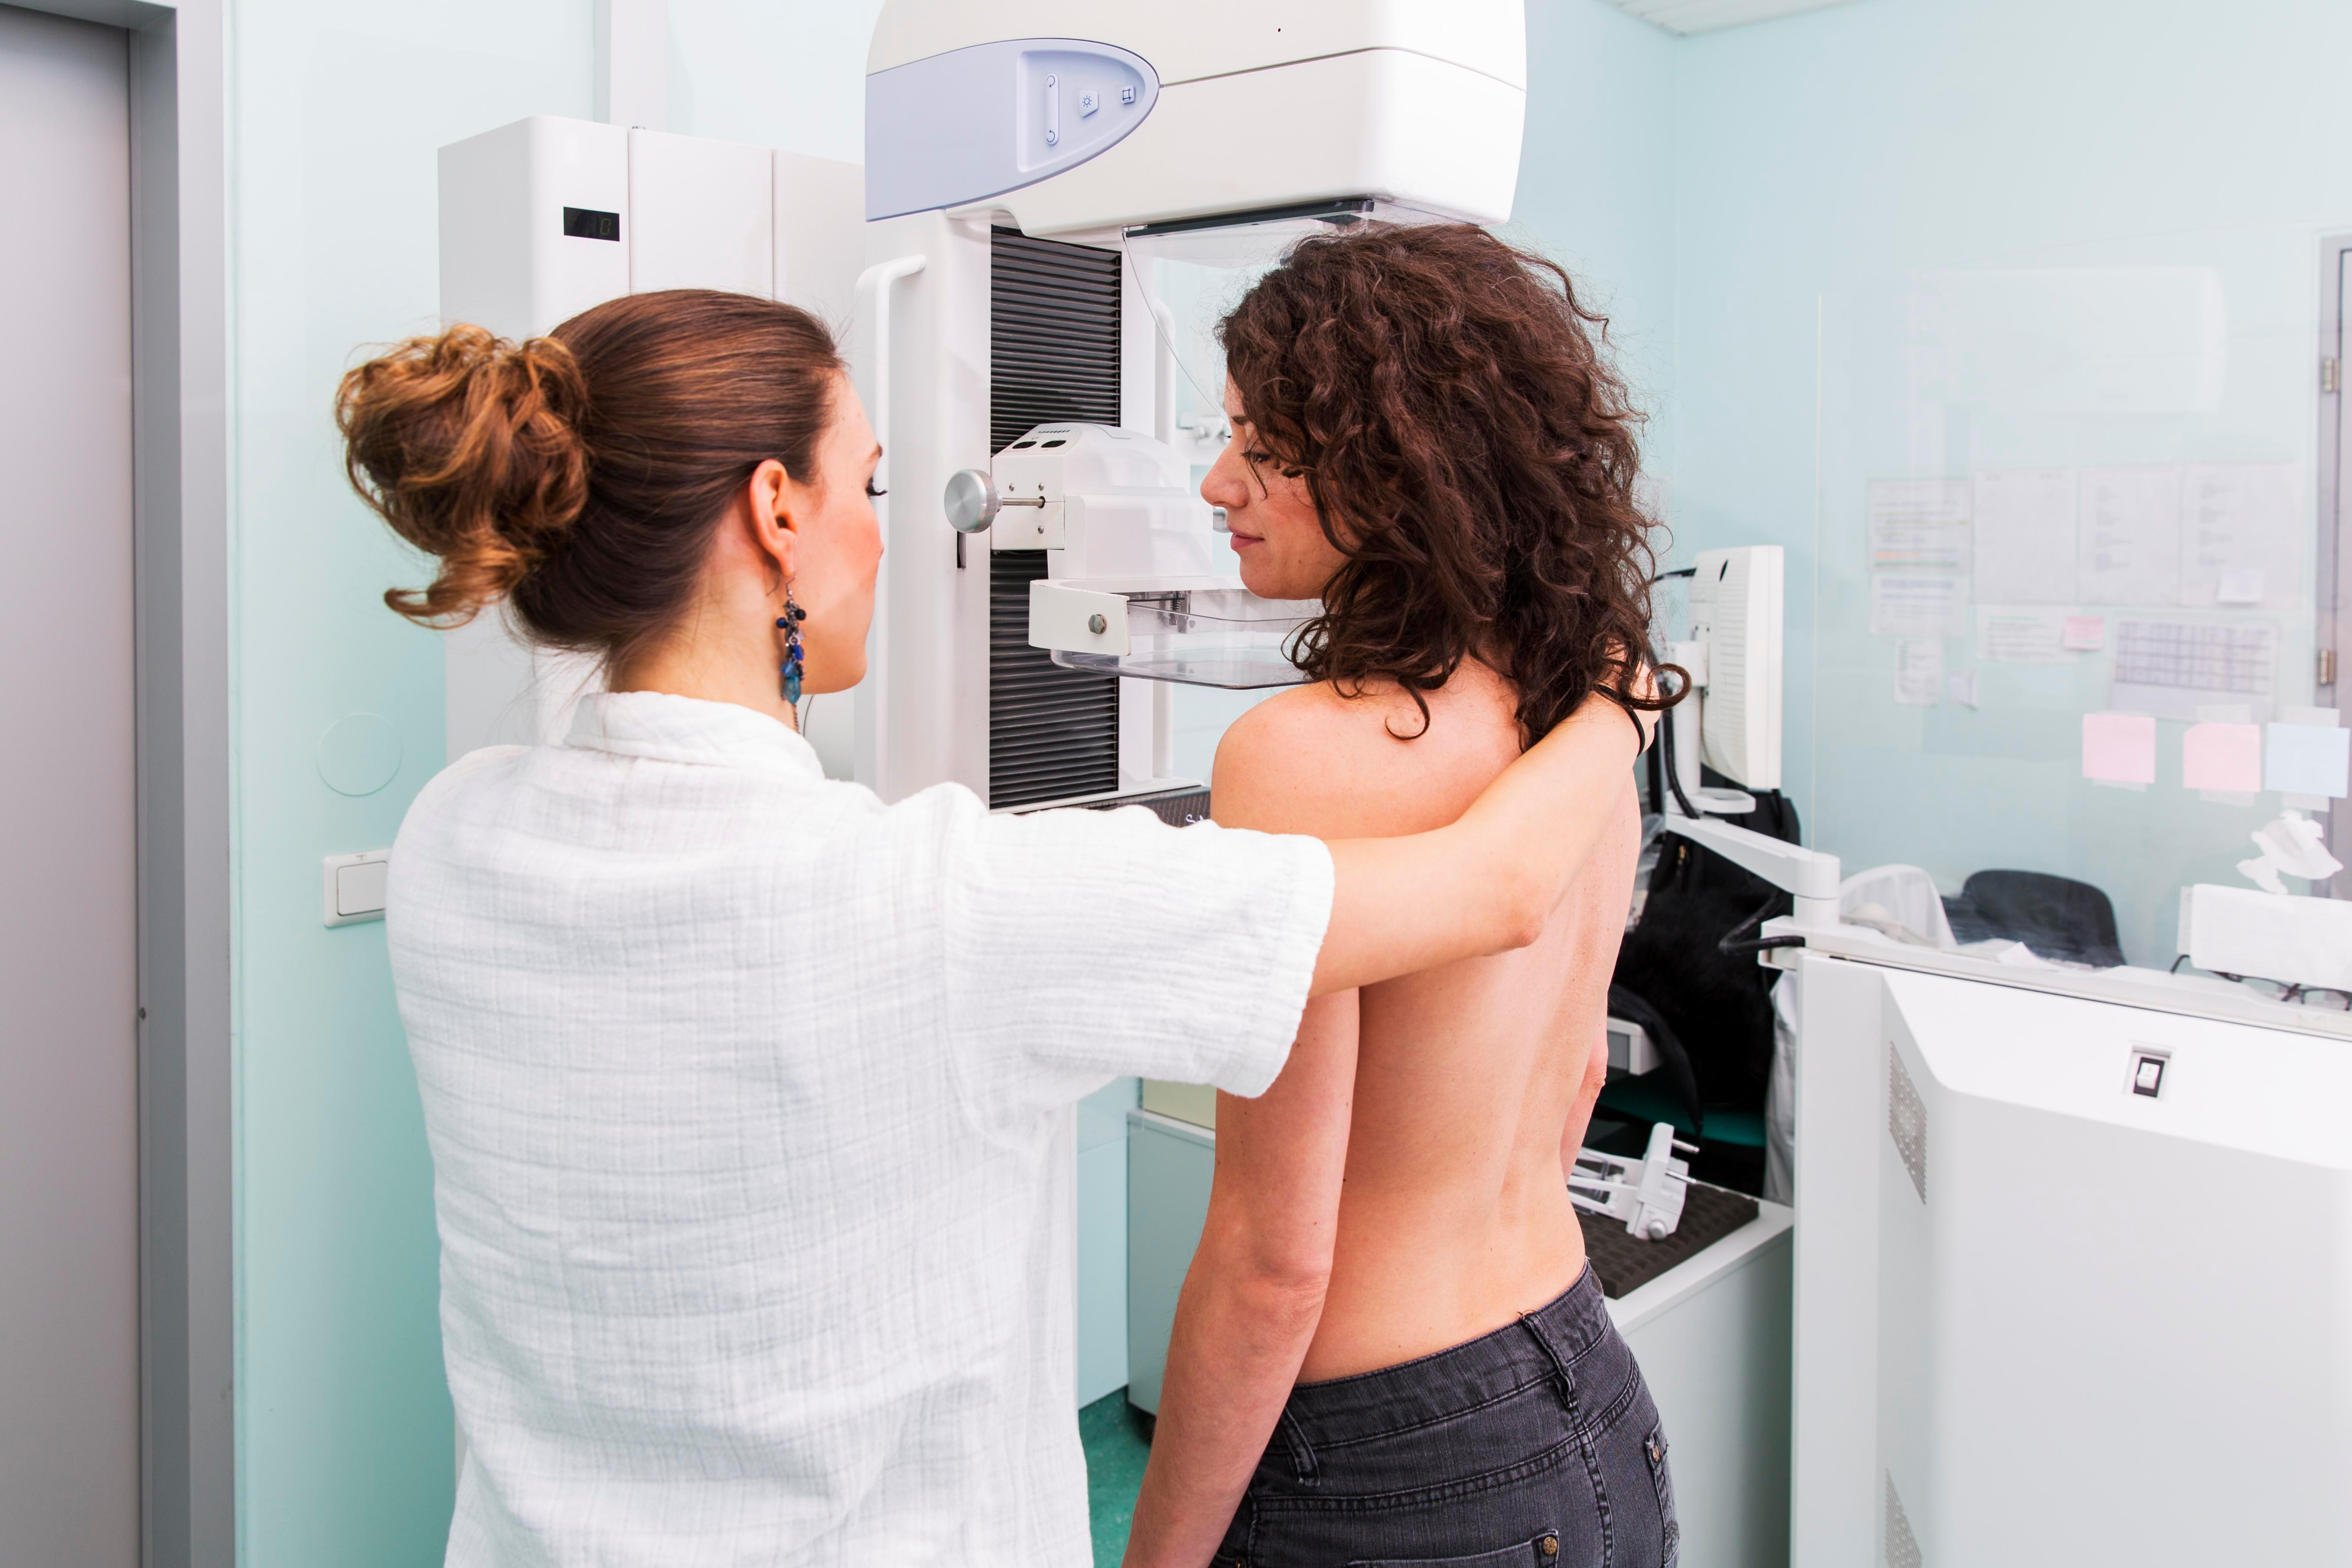 Hundreds of thousands of women 'dragged into breast cancer scare'